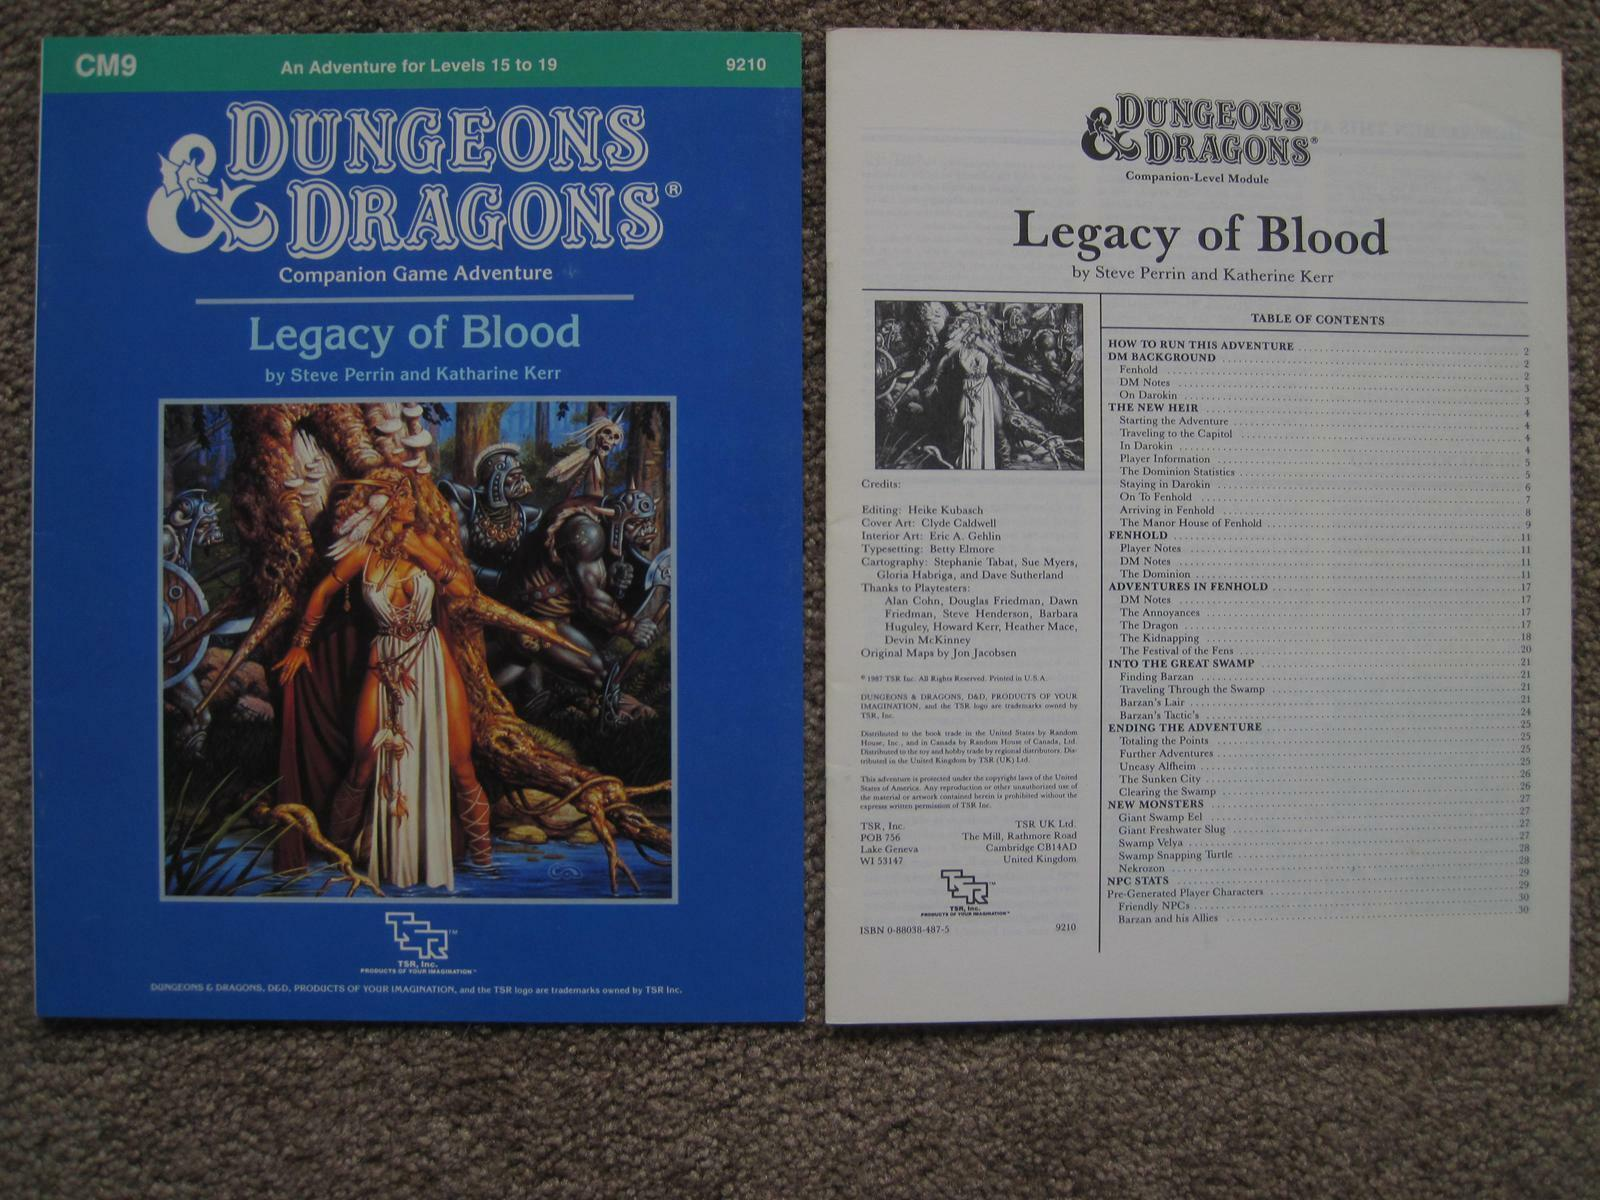 TSR 9210 D&D Dungeons and Dragons CM9 Legacy of Blood